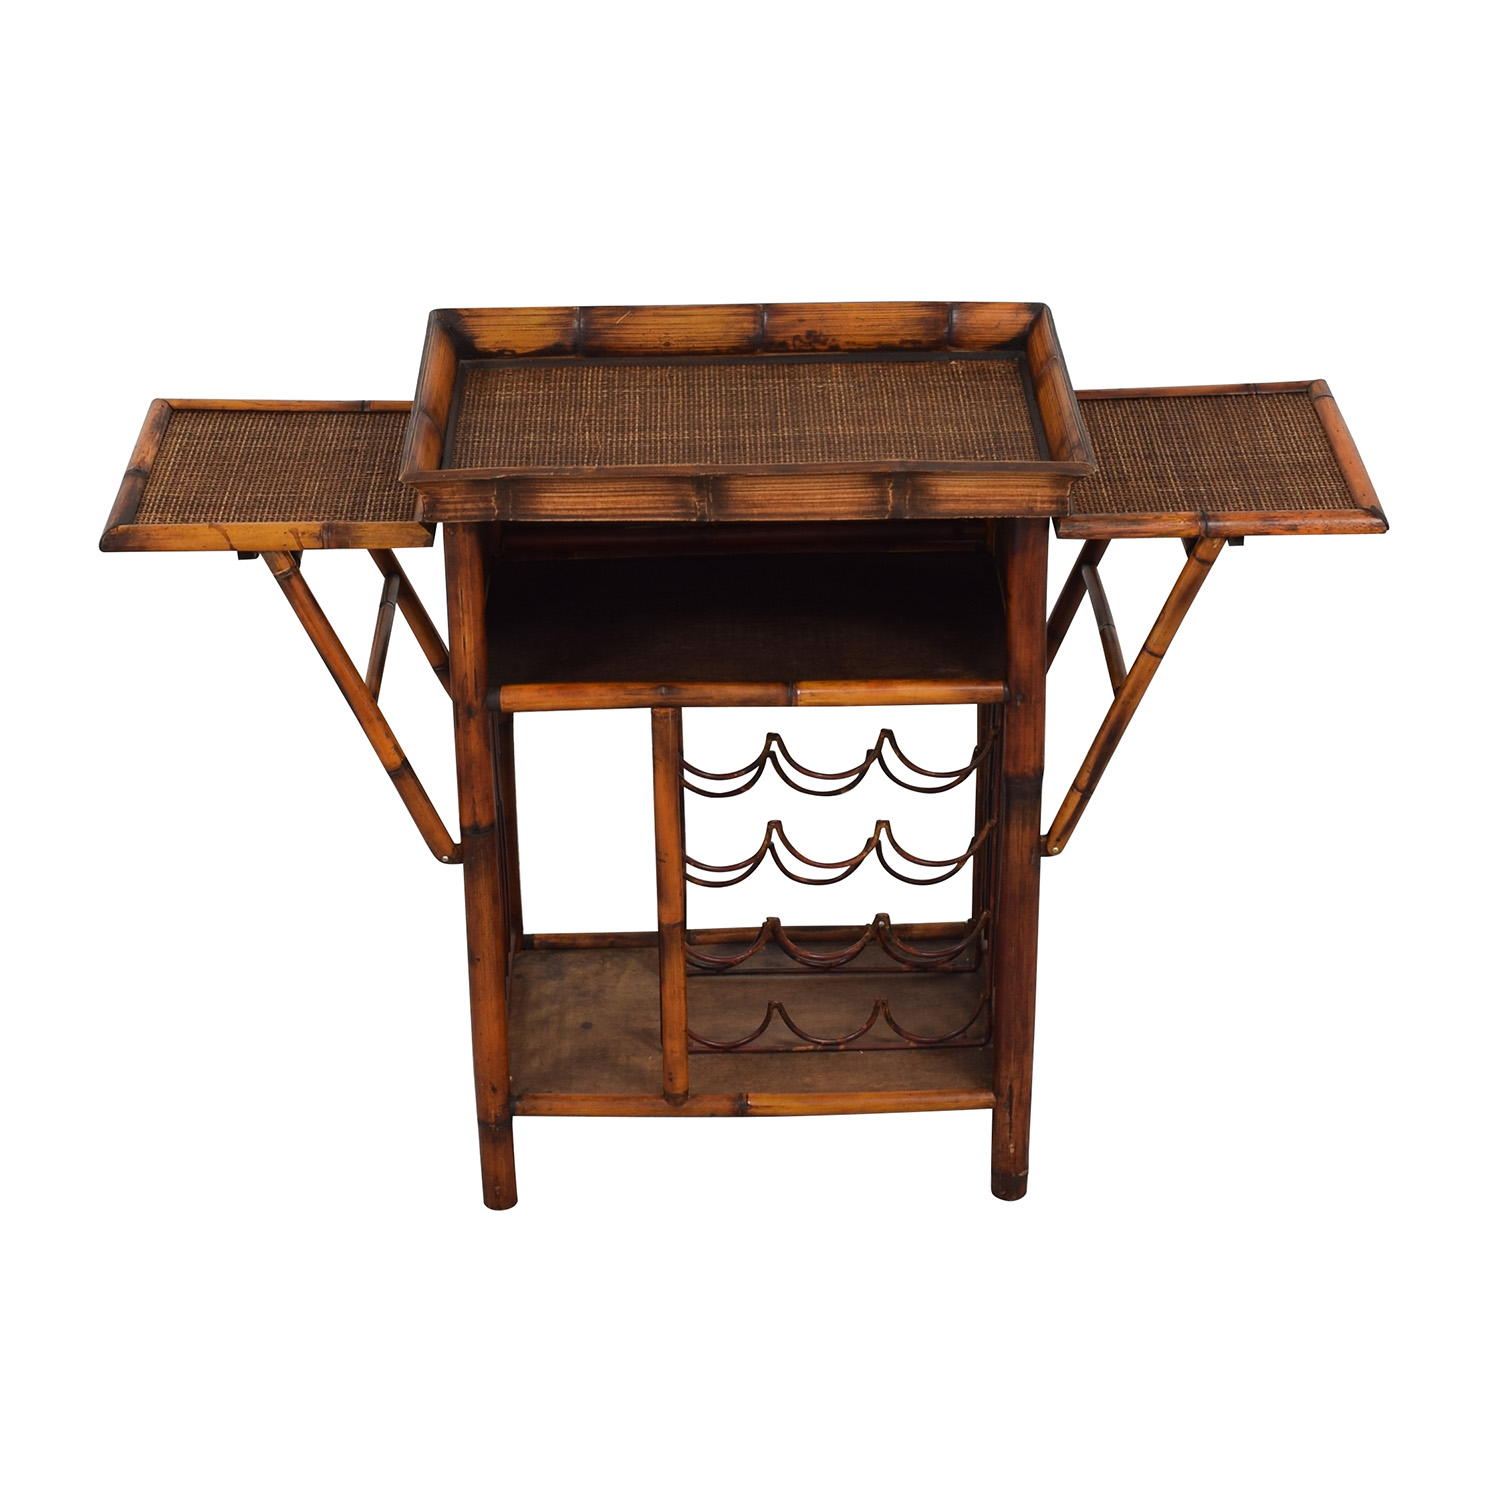 buy Interlude Home Interlude Home Wine Storage Serving Table online